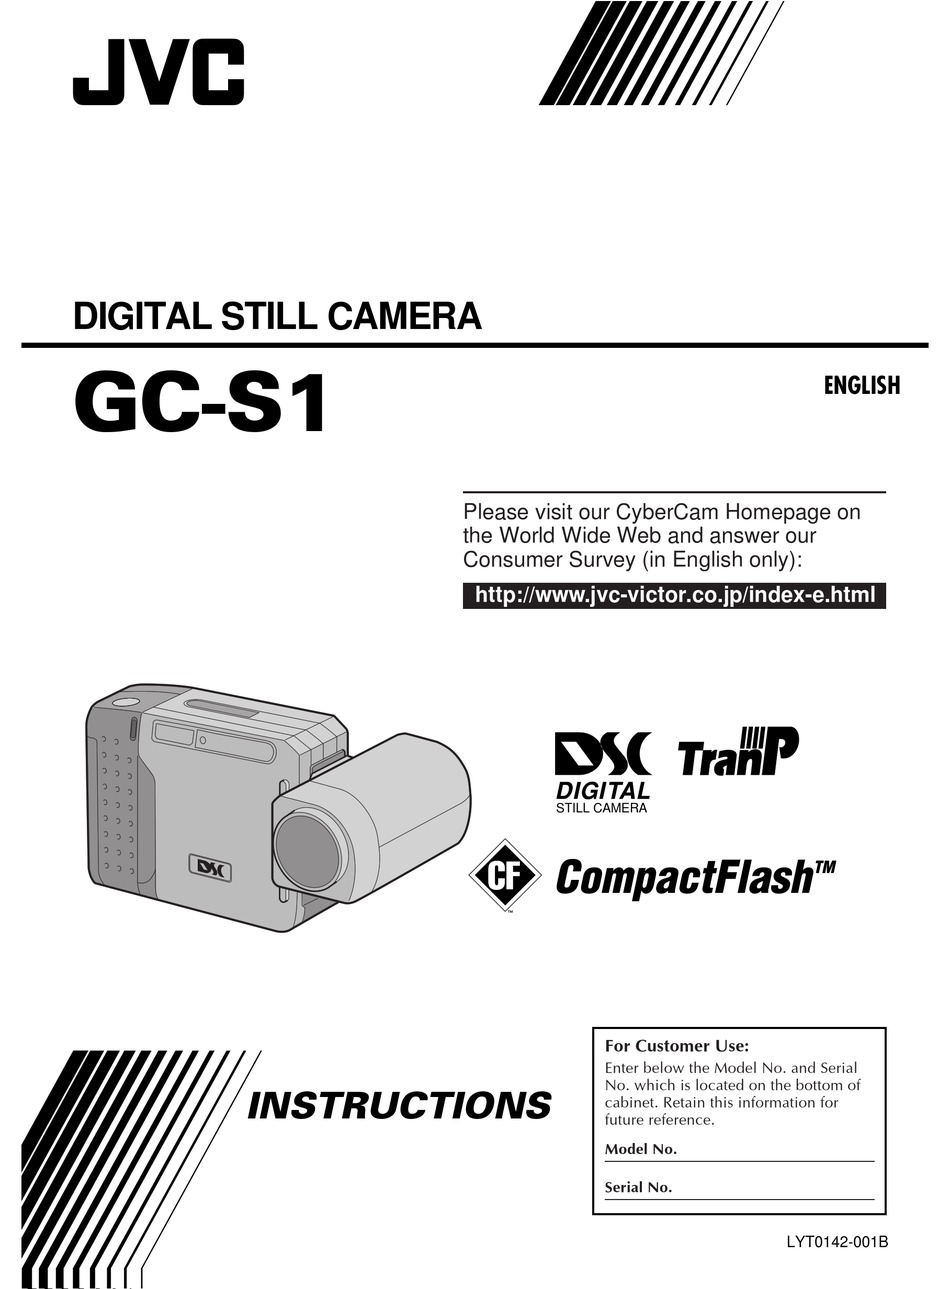 Spectra S1 Pump Manual Guide